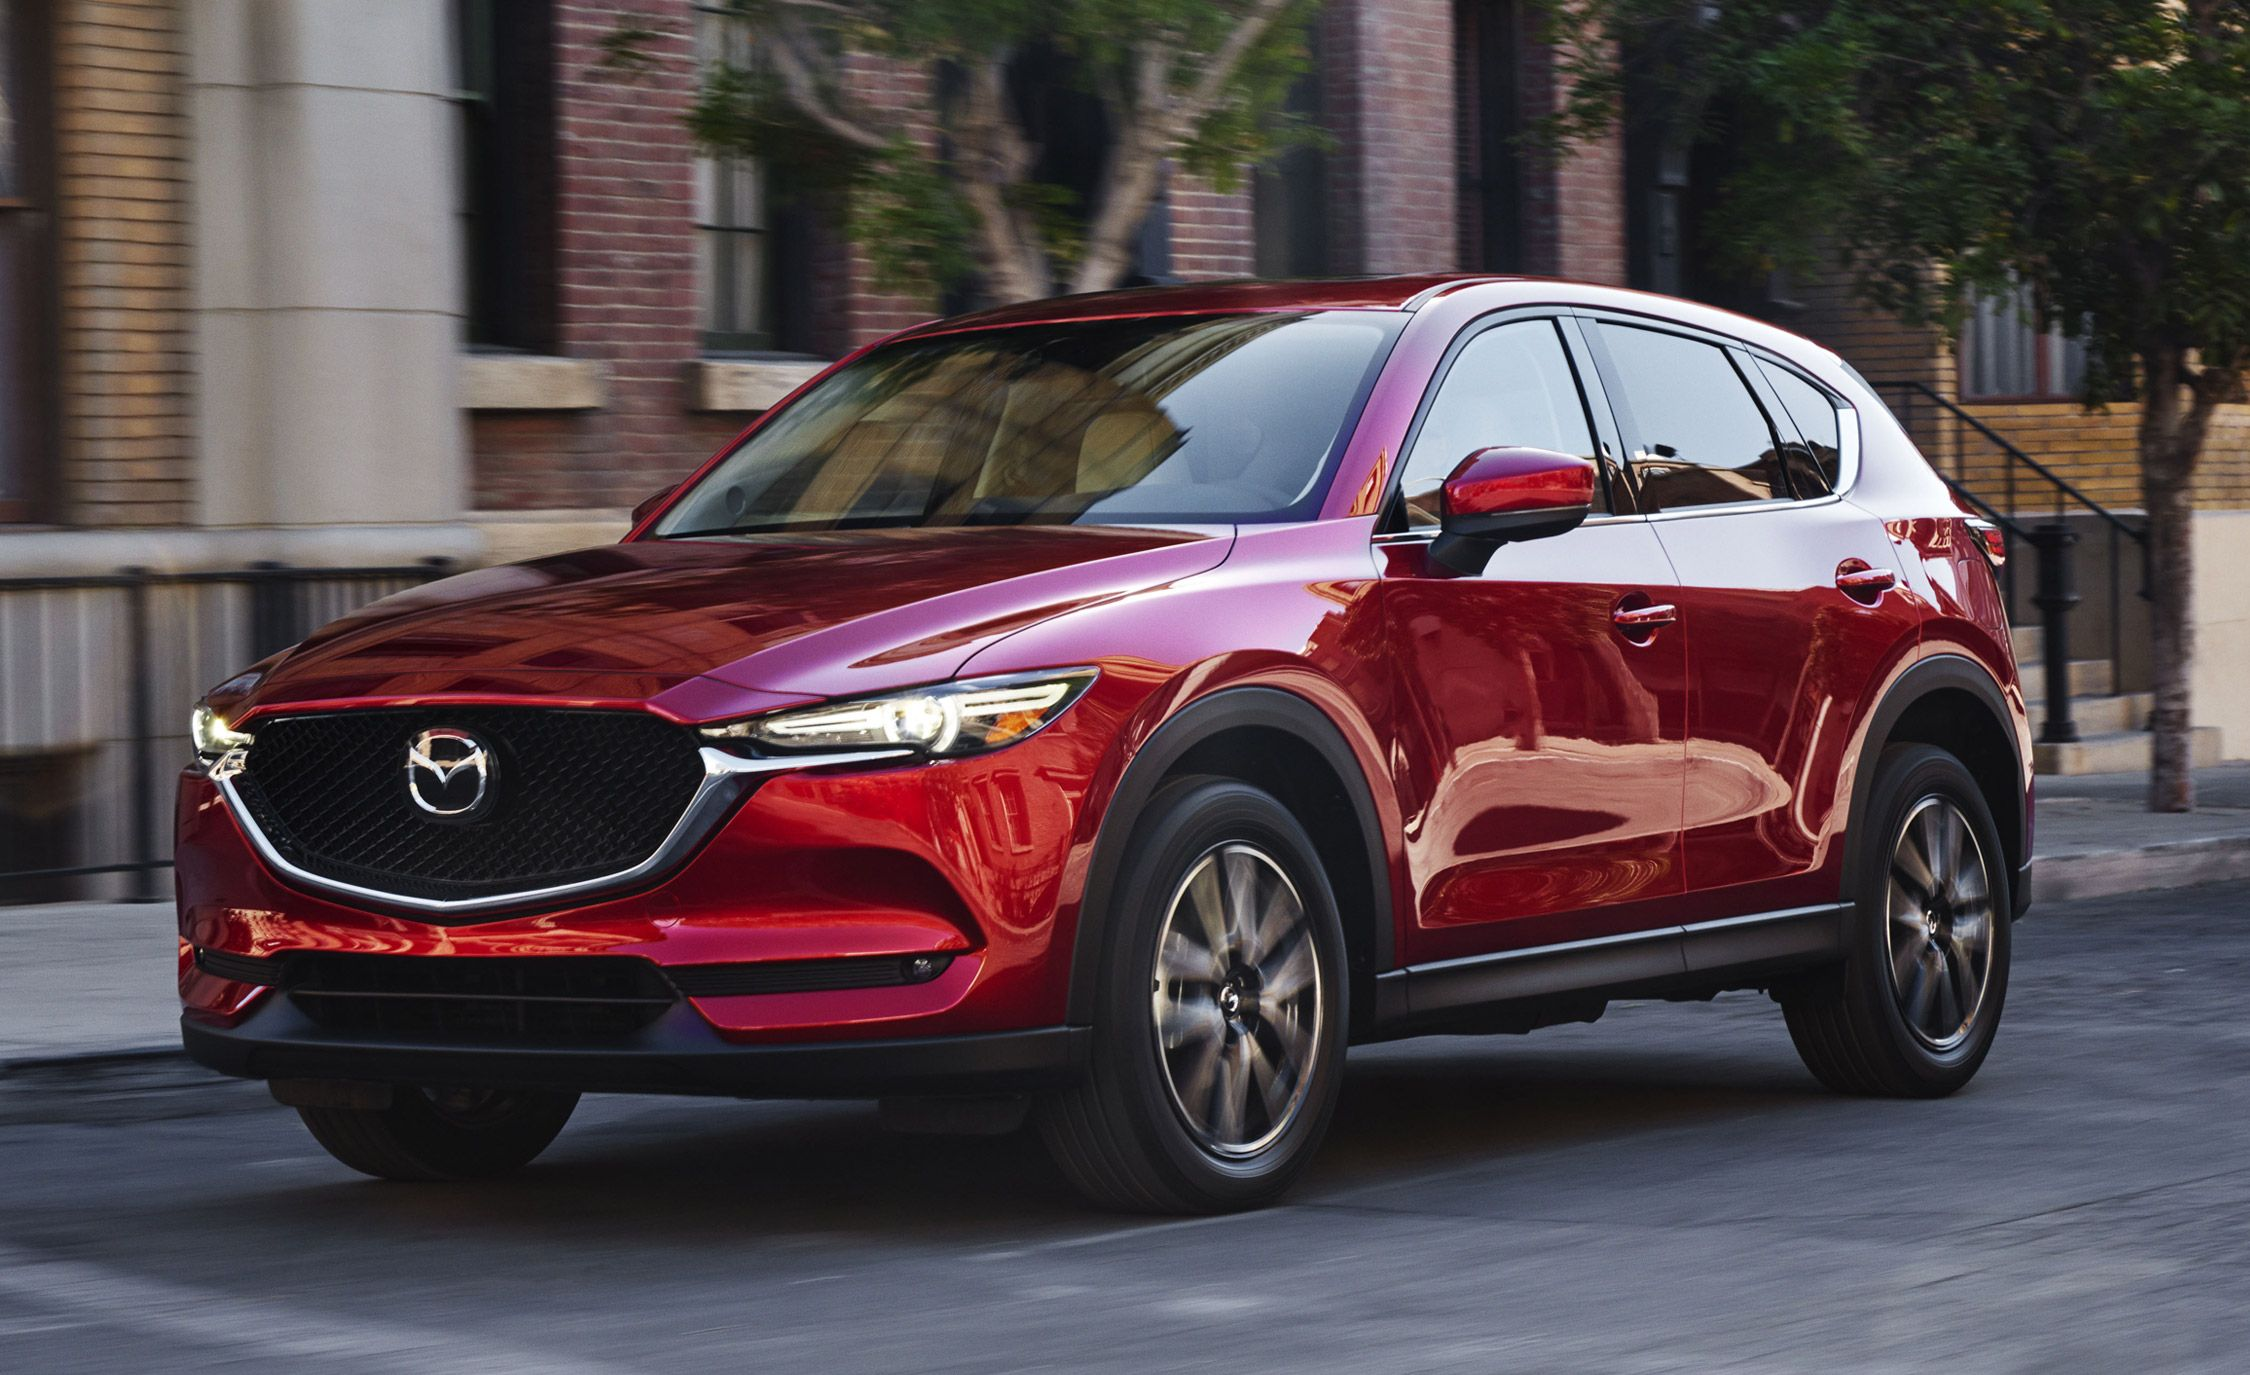 Mazda Cx 5 Diesel Release Date >> 2018 Mazda Cx 5 Diesel Is A Car Worth Waiting For Feature Car